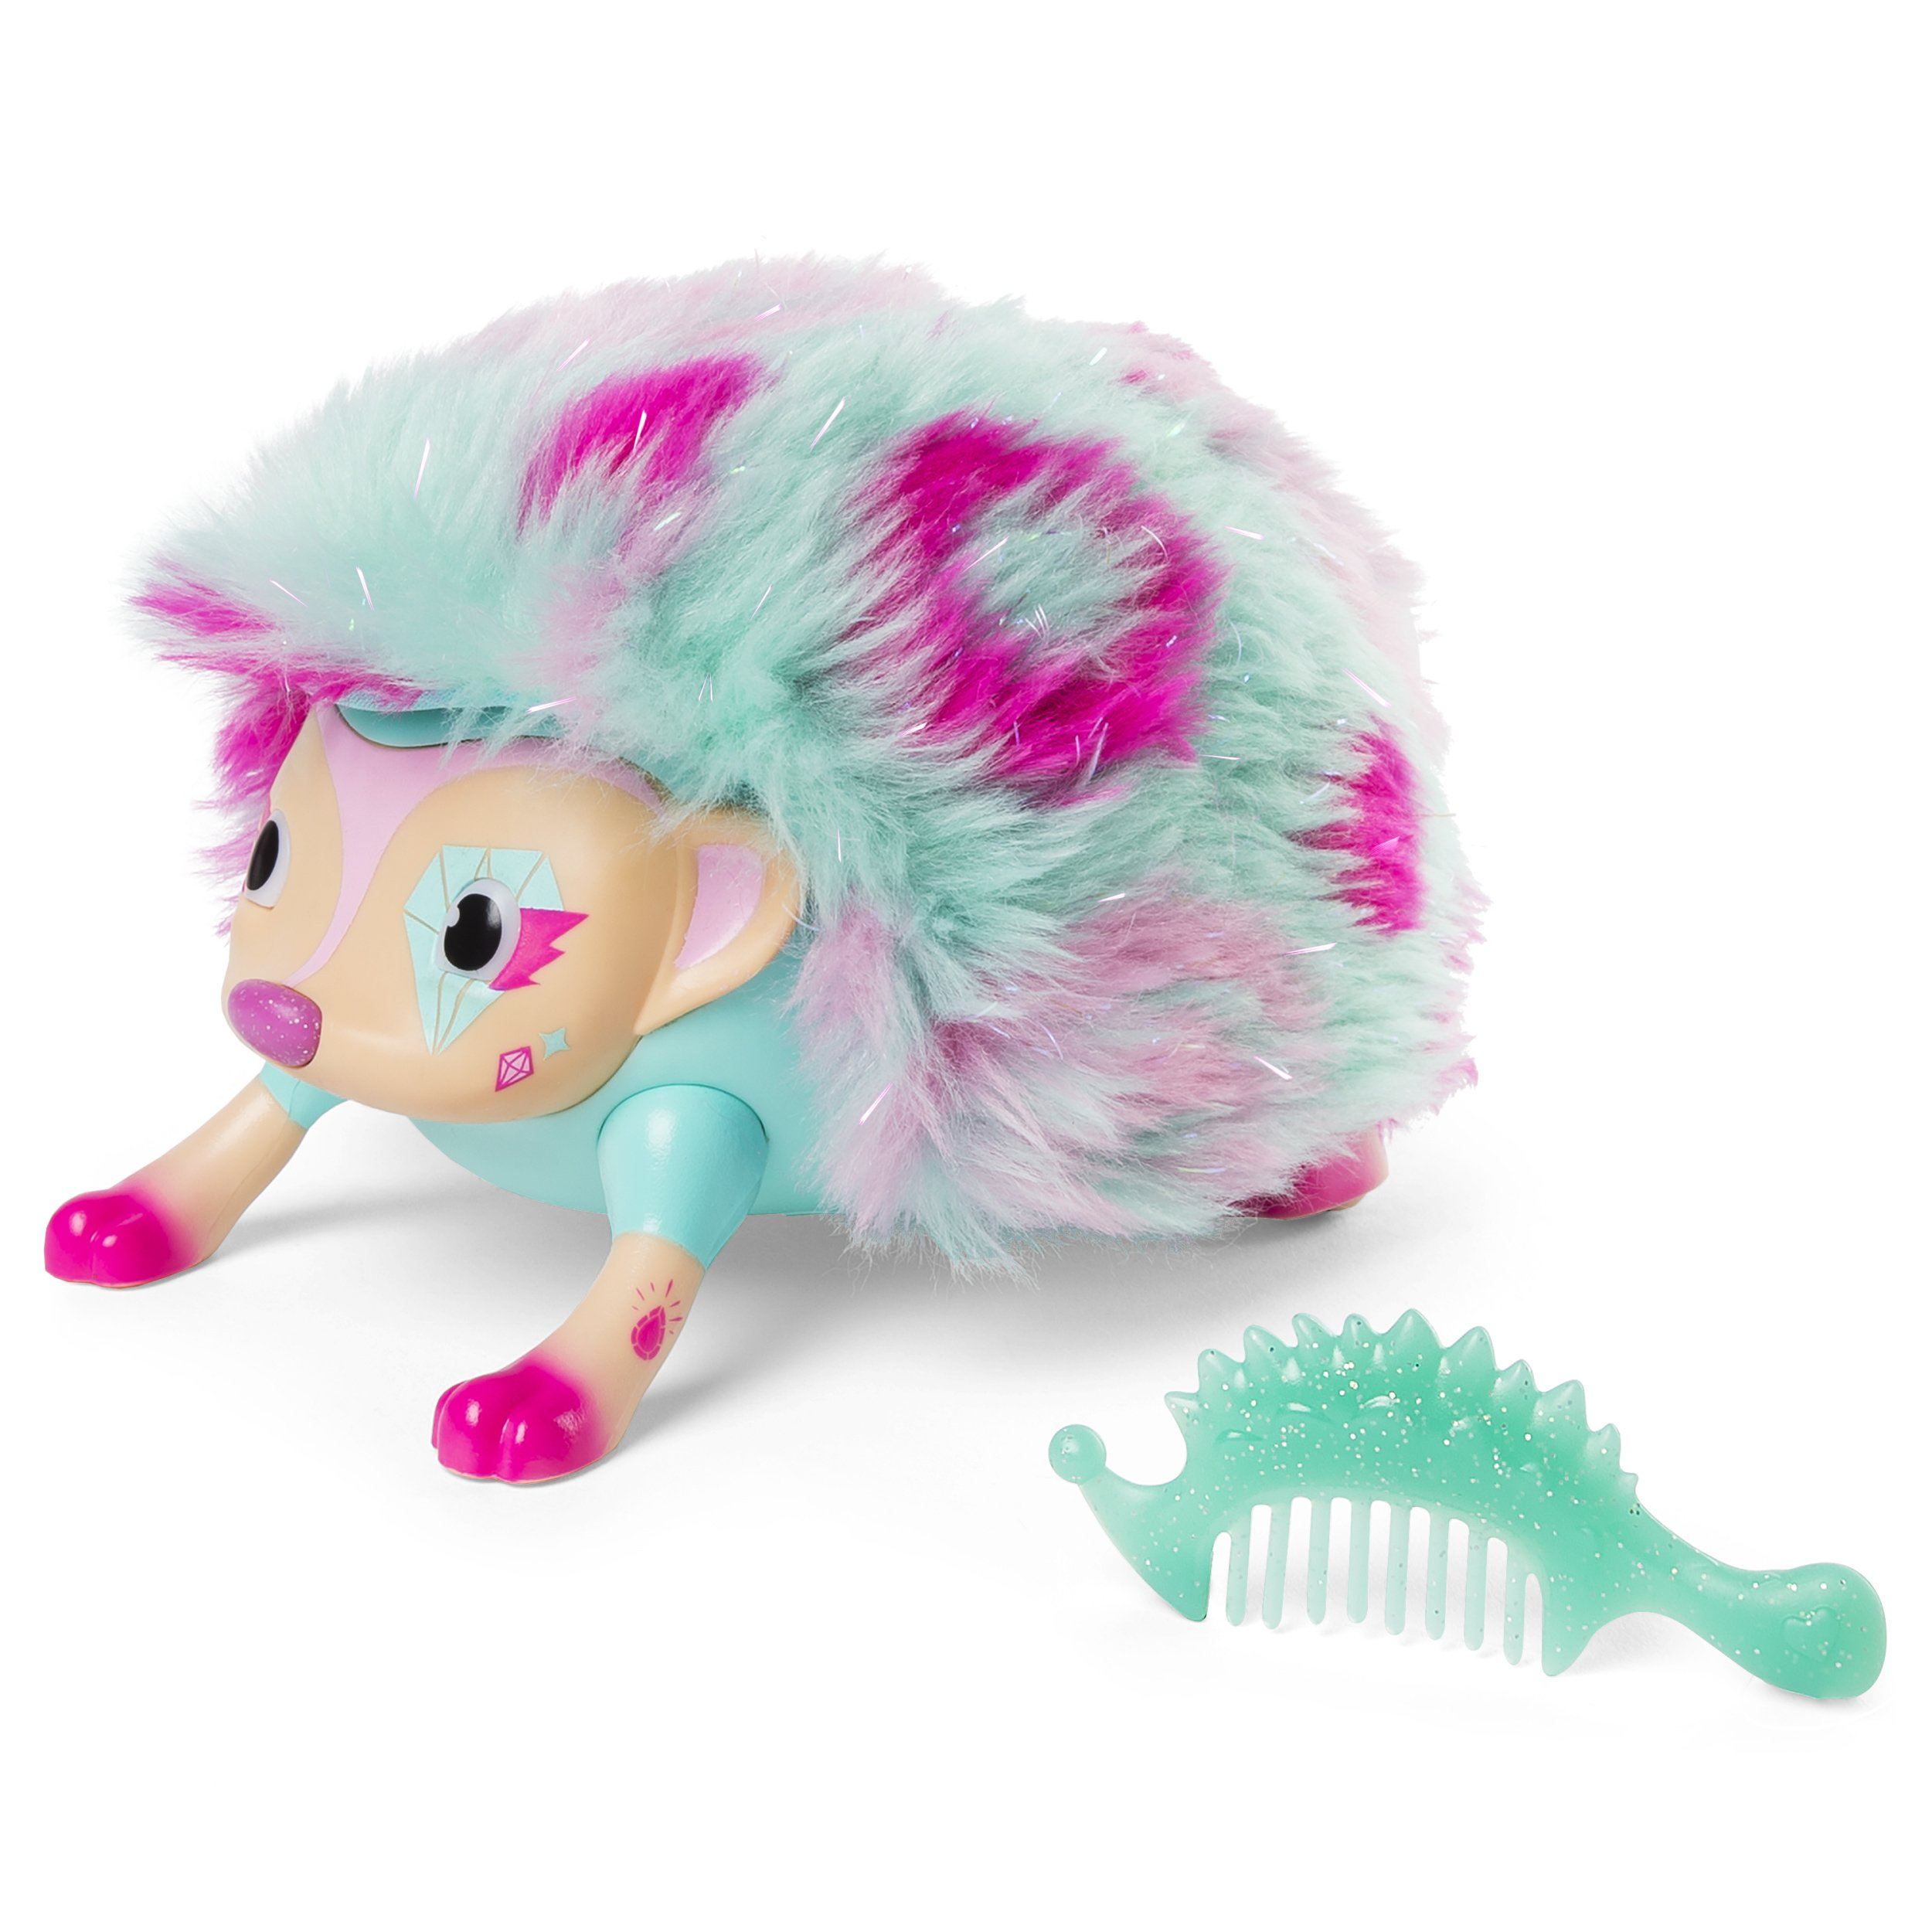 Zoomer Hedgiez Interactive Hedgehog with Lights, Sounds and Sensors, by Spin Master by Zoomer (Image #1)